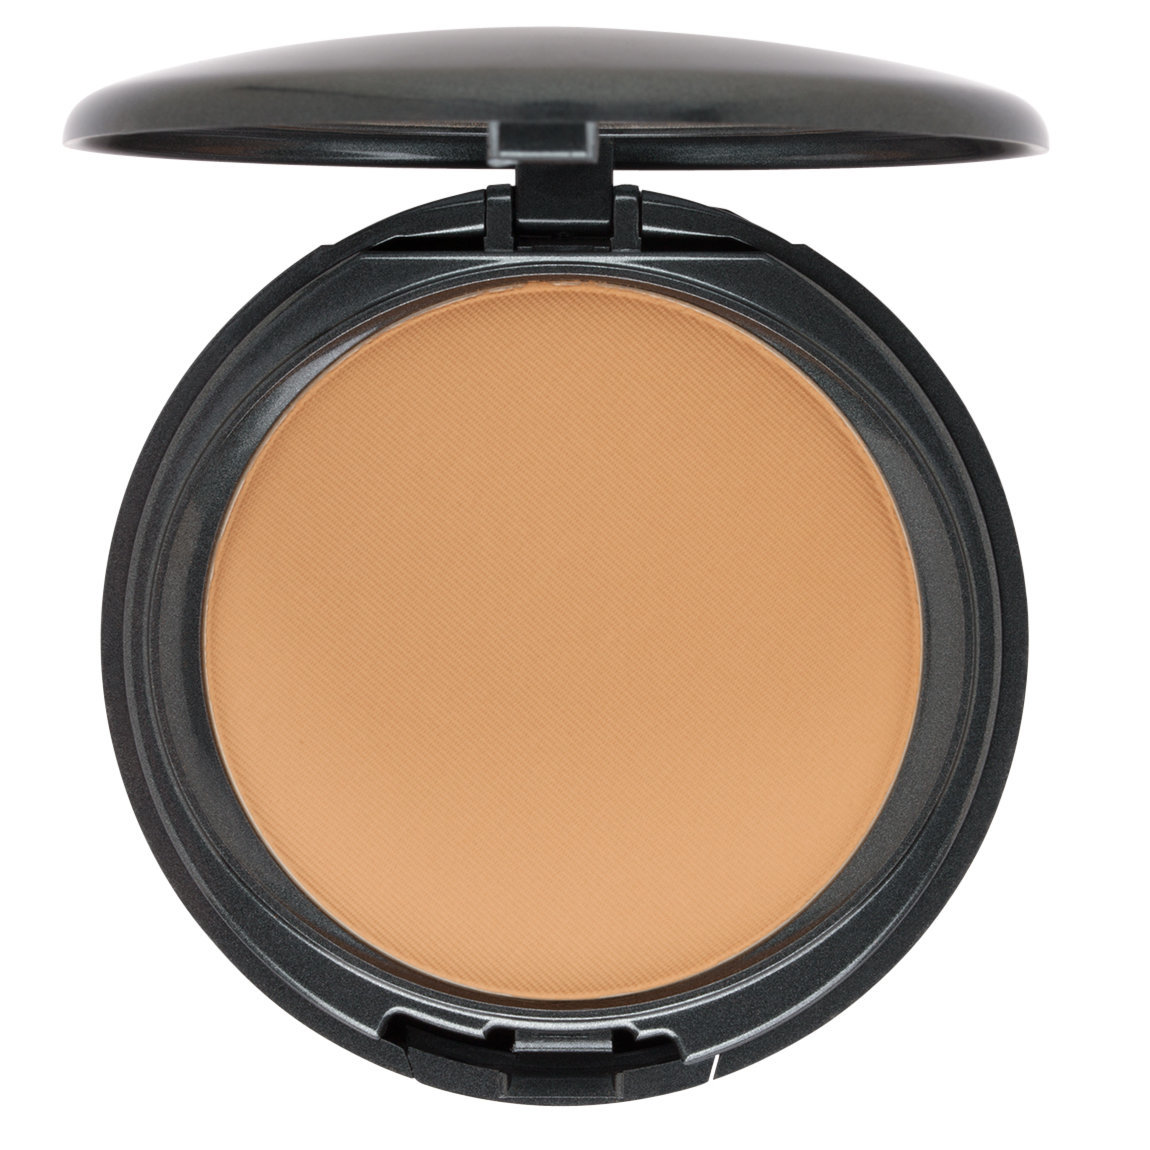 cover fx pressed powder review